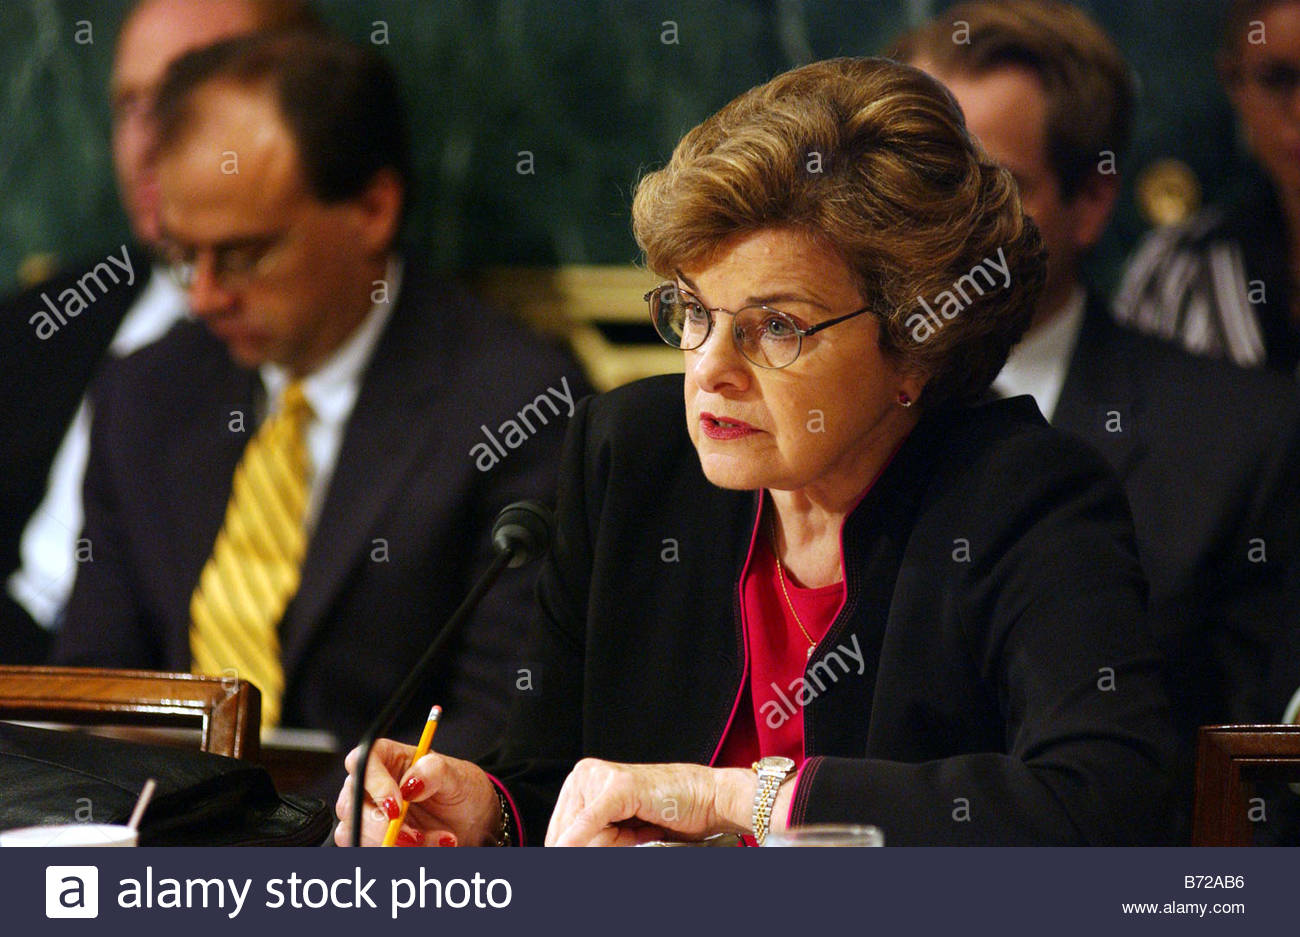 7 29 03 VICTIMS RIGHTS Sen Dianne Feinstein D Calif during the Senate Judiciary markup of a joint resolution proposing - Stock Image